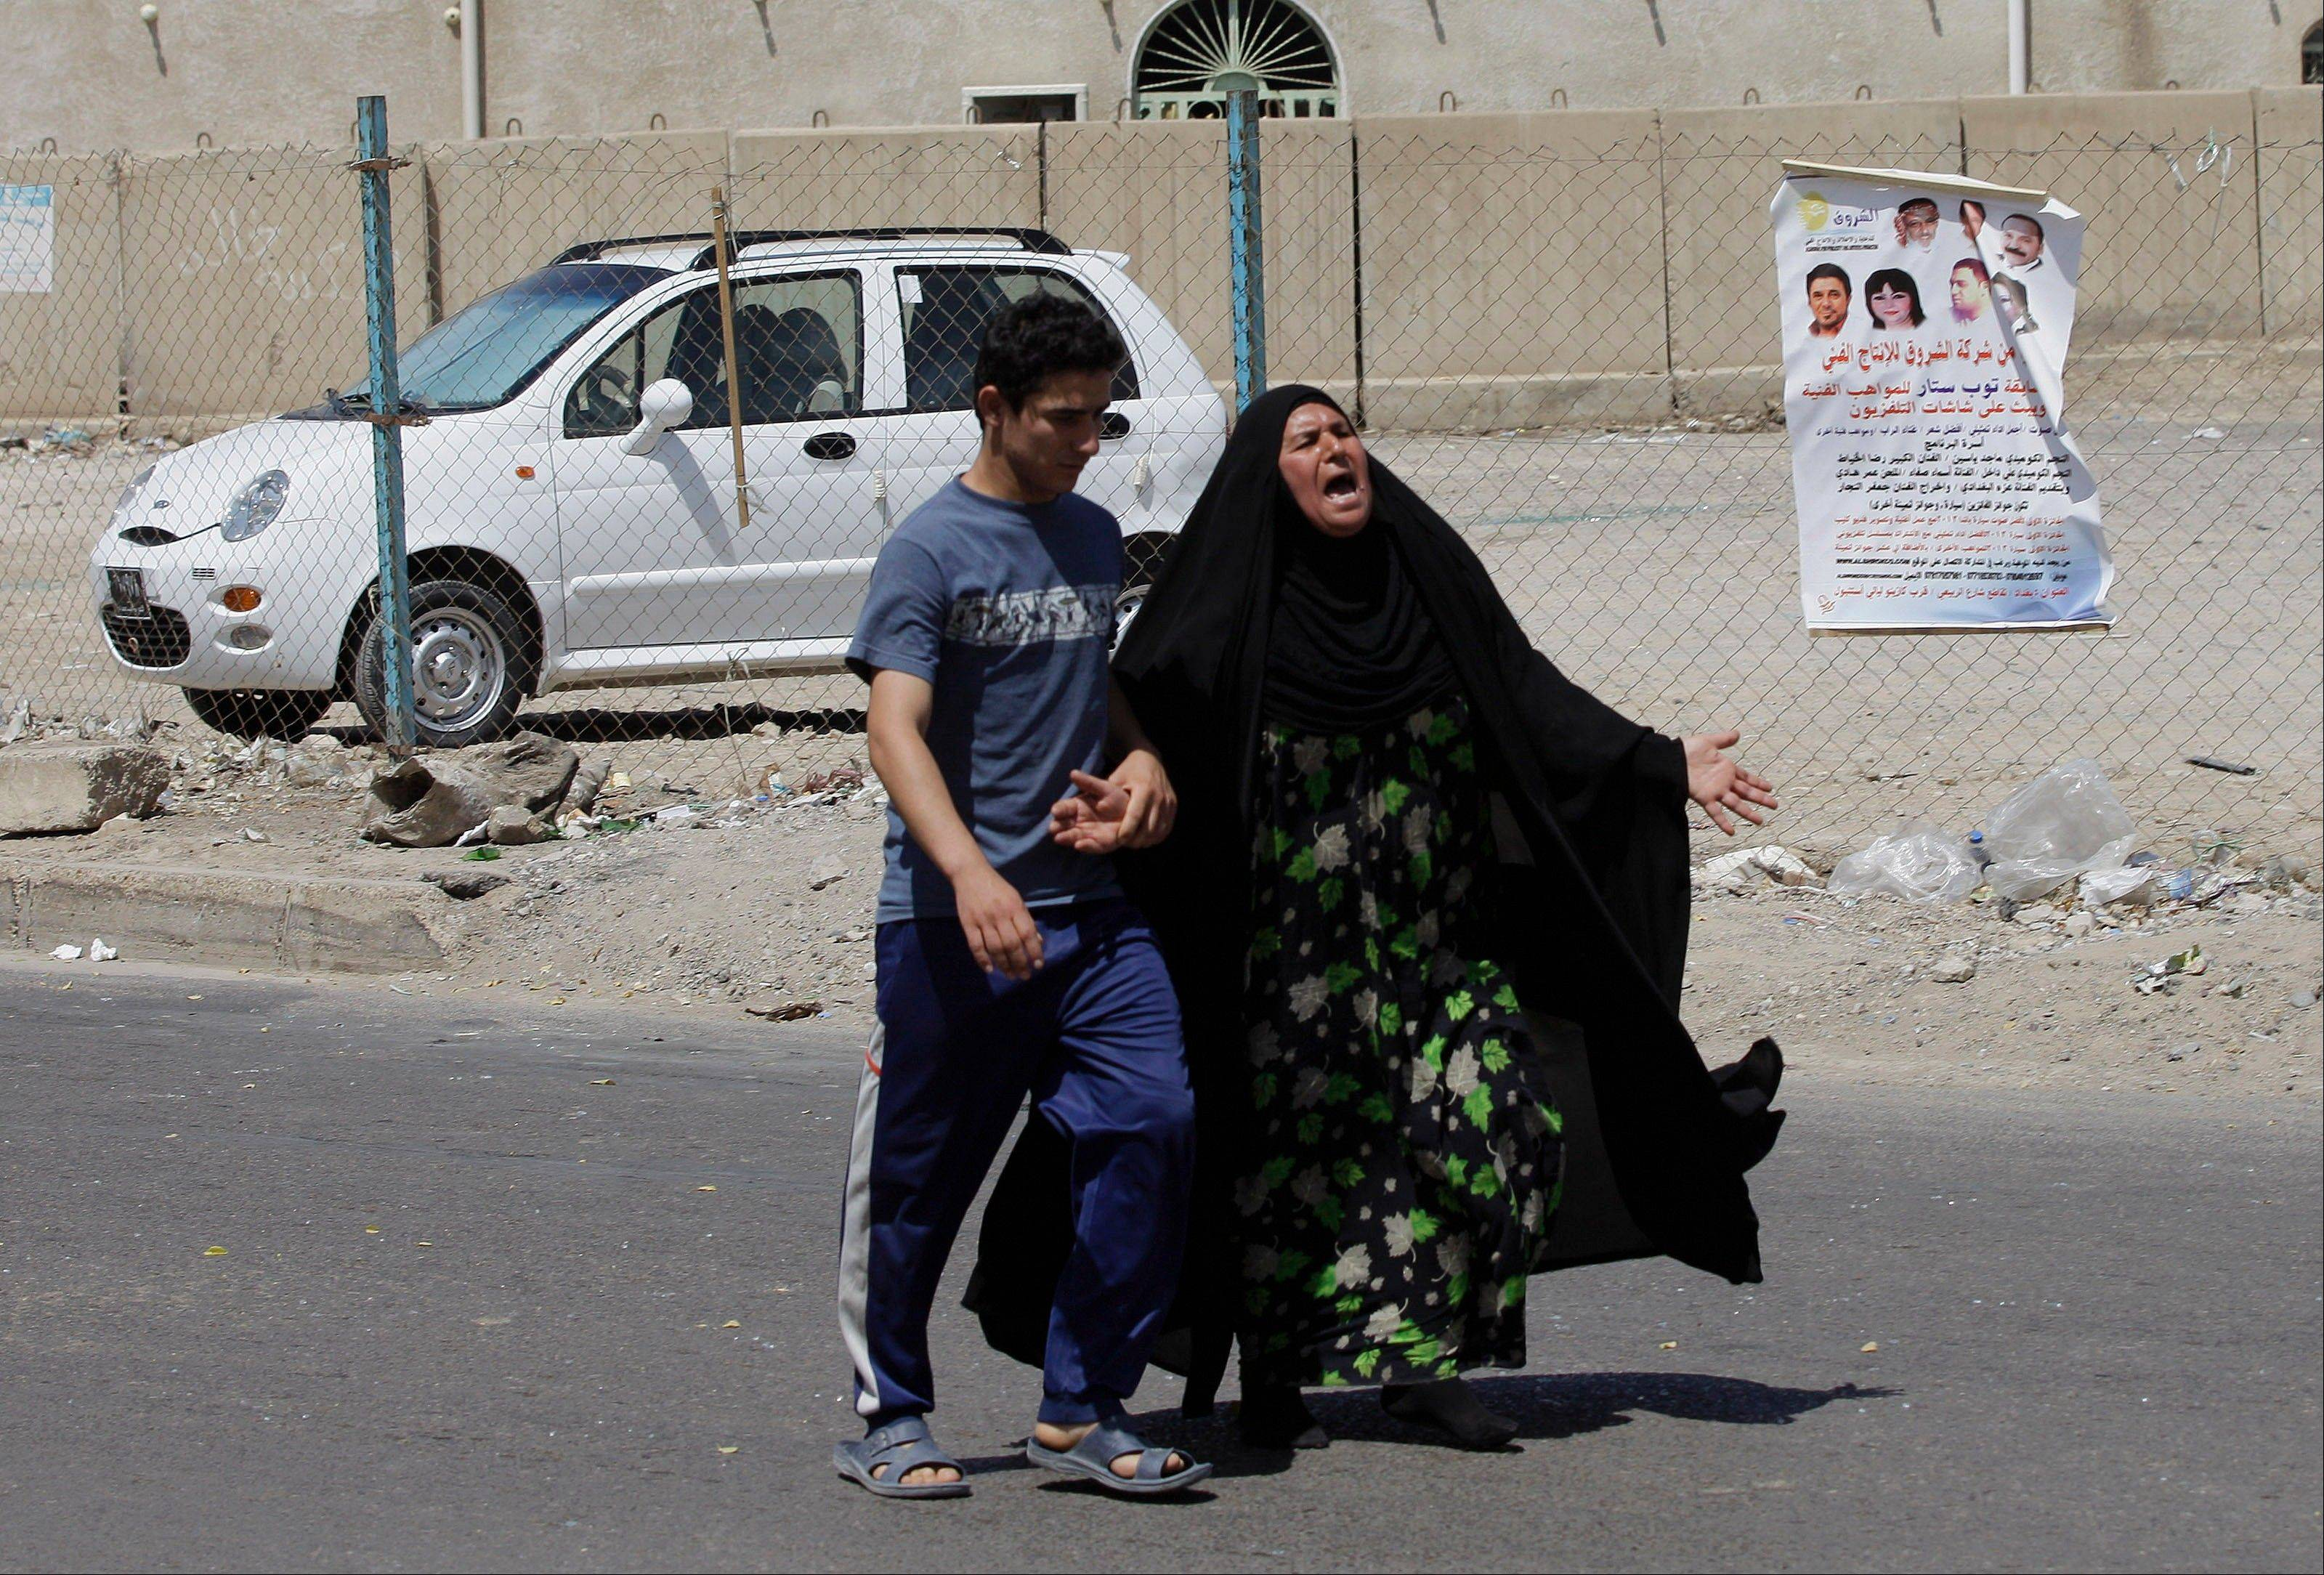 Umm Satta grieves for her slain college student son, Sattar Jabbar, near Habib al-Asadi Shiite mosque in Baghdad, Iraq, Tuesday, June 18, 2013. Two suicide bombers blew themselves up inside and near the Shiite mosque, Iraqi officials said. Most of the casualties were among students from a nearby Imam al-Sadiq University for Islamic Studies. Police officials said the university�s Shiite students usually perform their midday prayers in the targeted mosque.